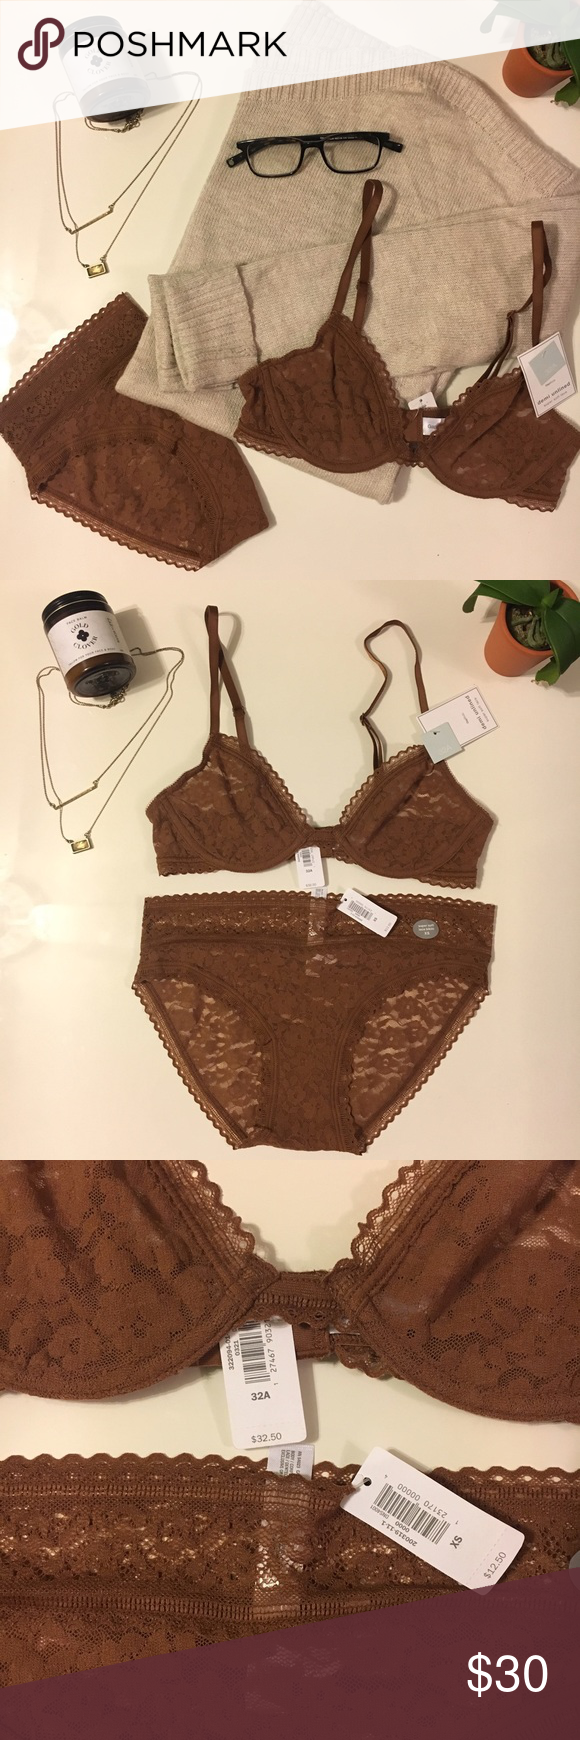 a676a96f850ca Gap body super soft mocha lace bra and panties 32A mocha lace underwire bra  with matching xs panties. So soft. And beautifully dreamy. GAP Intimates    ...